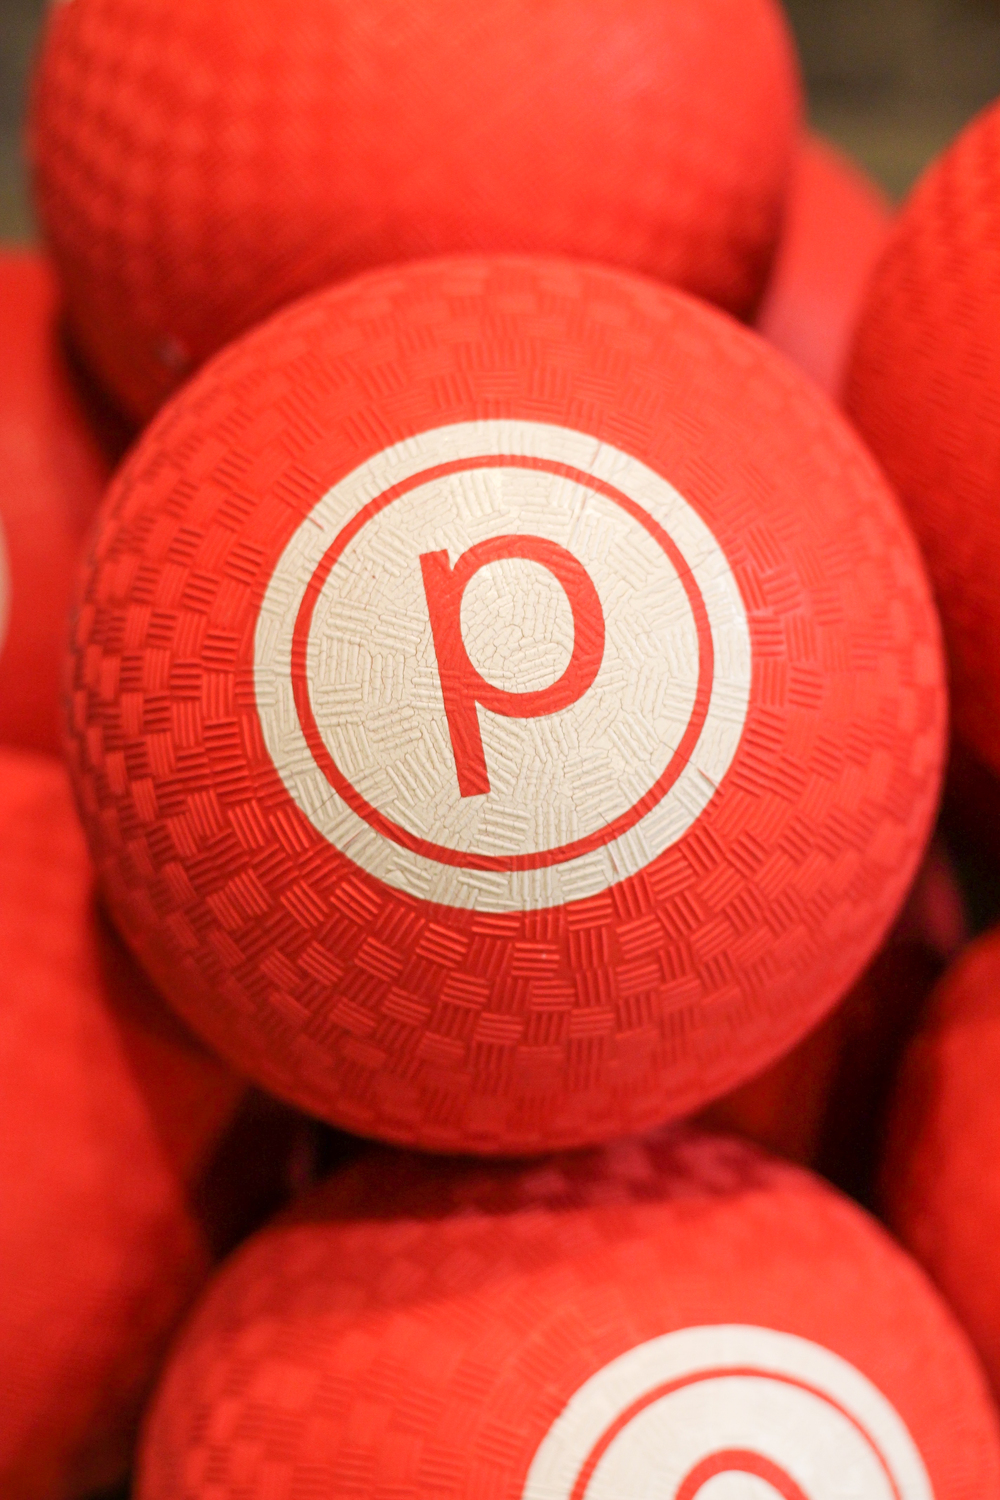 Pure Barre Edina, Strength, Tone, Exercise, Flexibility, Strong, Fit, Fitness, Group Fitness